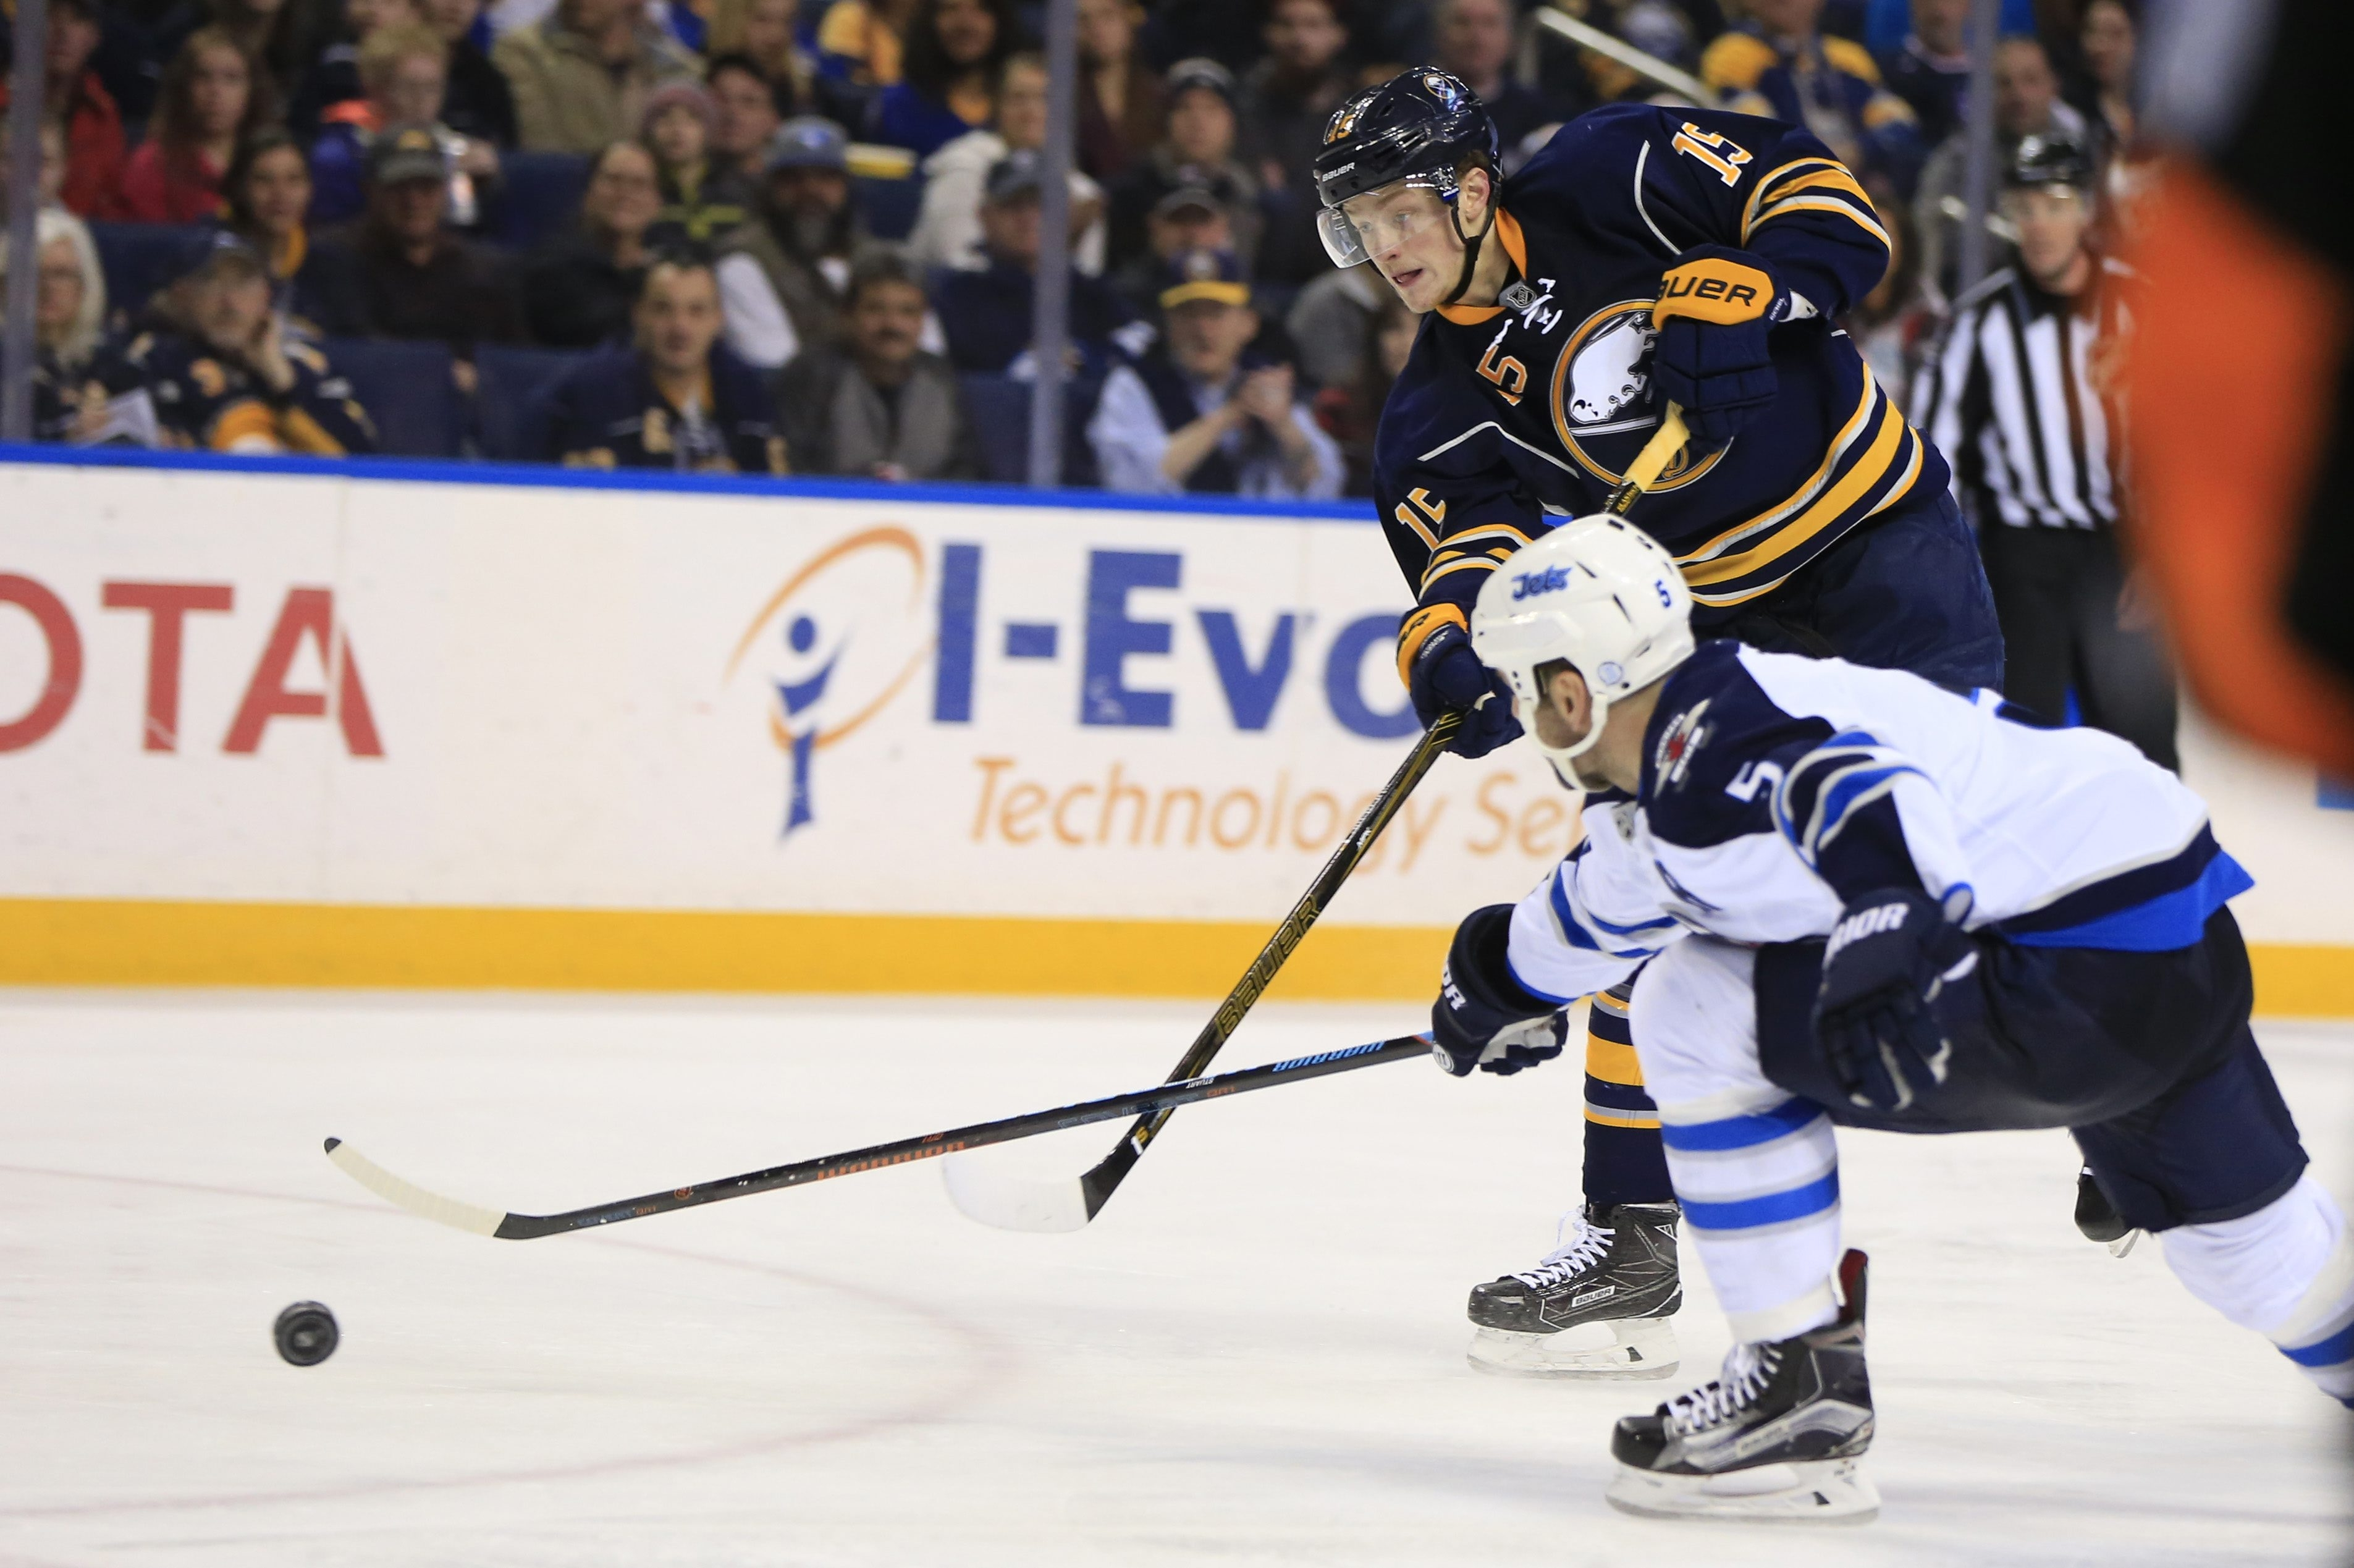 Buffalo Sabres Jack Eichel scores the game-winning goal against the Winnipeg Jets during third-period action at First Niagara Center on March 26, 2016.